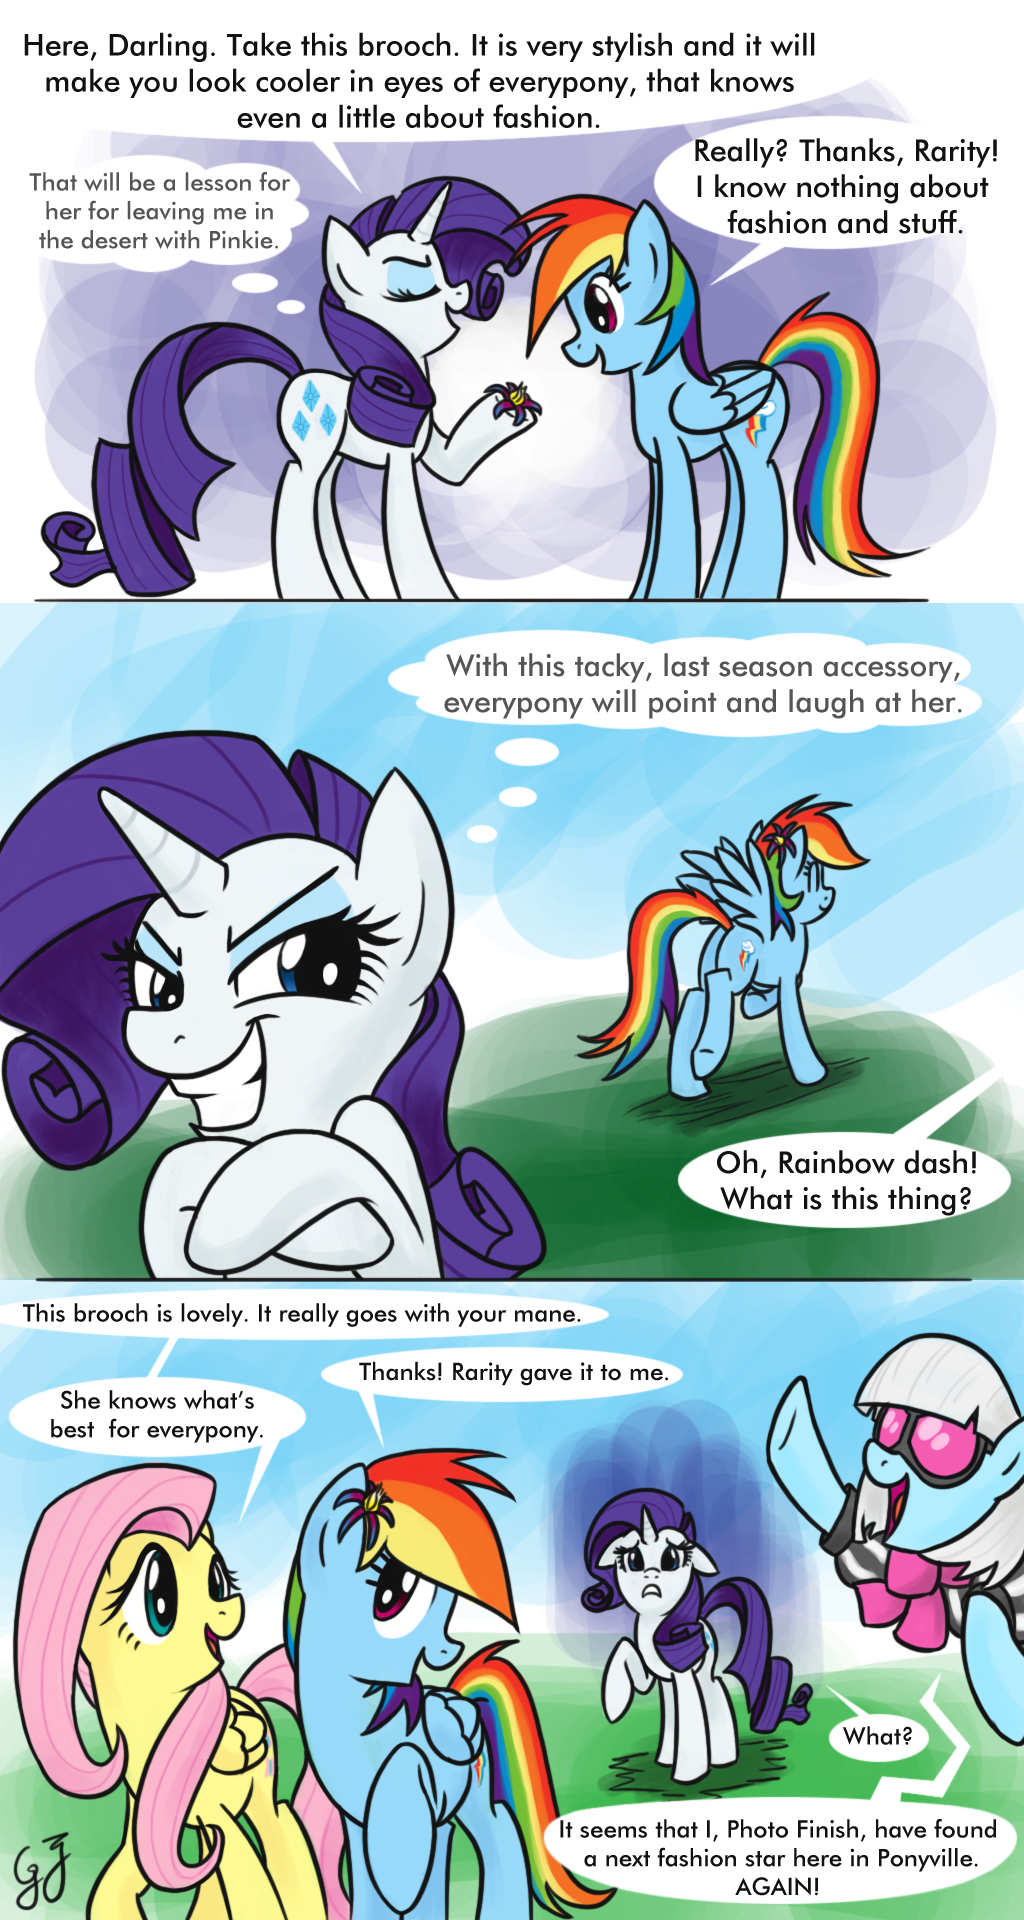 rarity_don__t_know_how_to_vengeance_by_glancojusticar-d4o8w2o.jpg